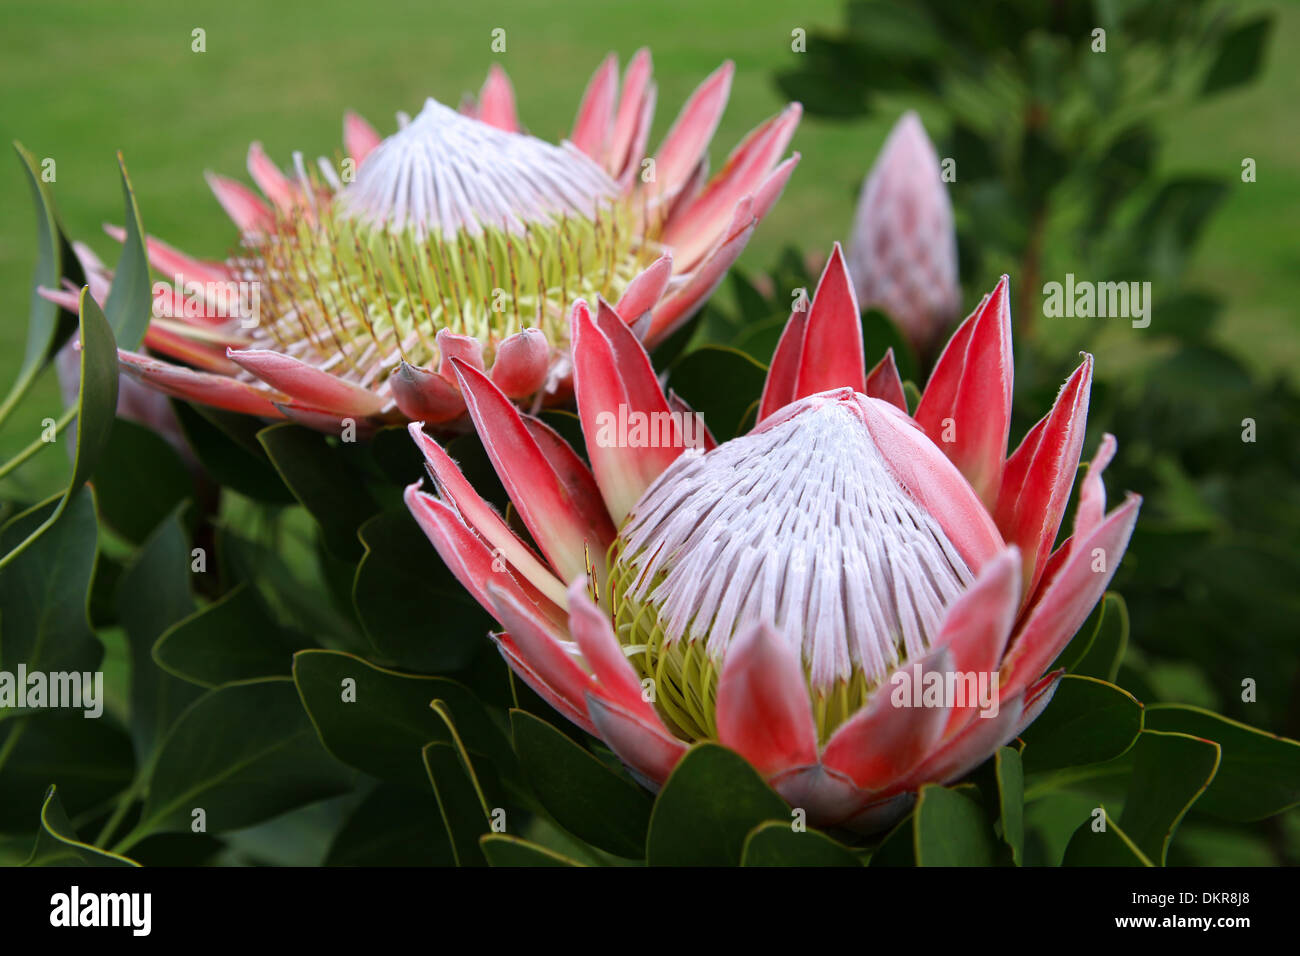 Blume Südafrika King Protea, National, Flower, South Africa, Africa